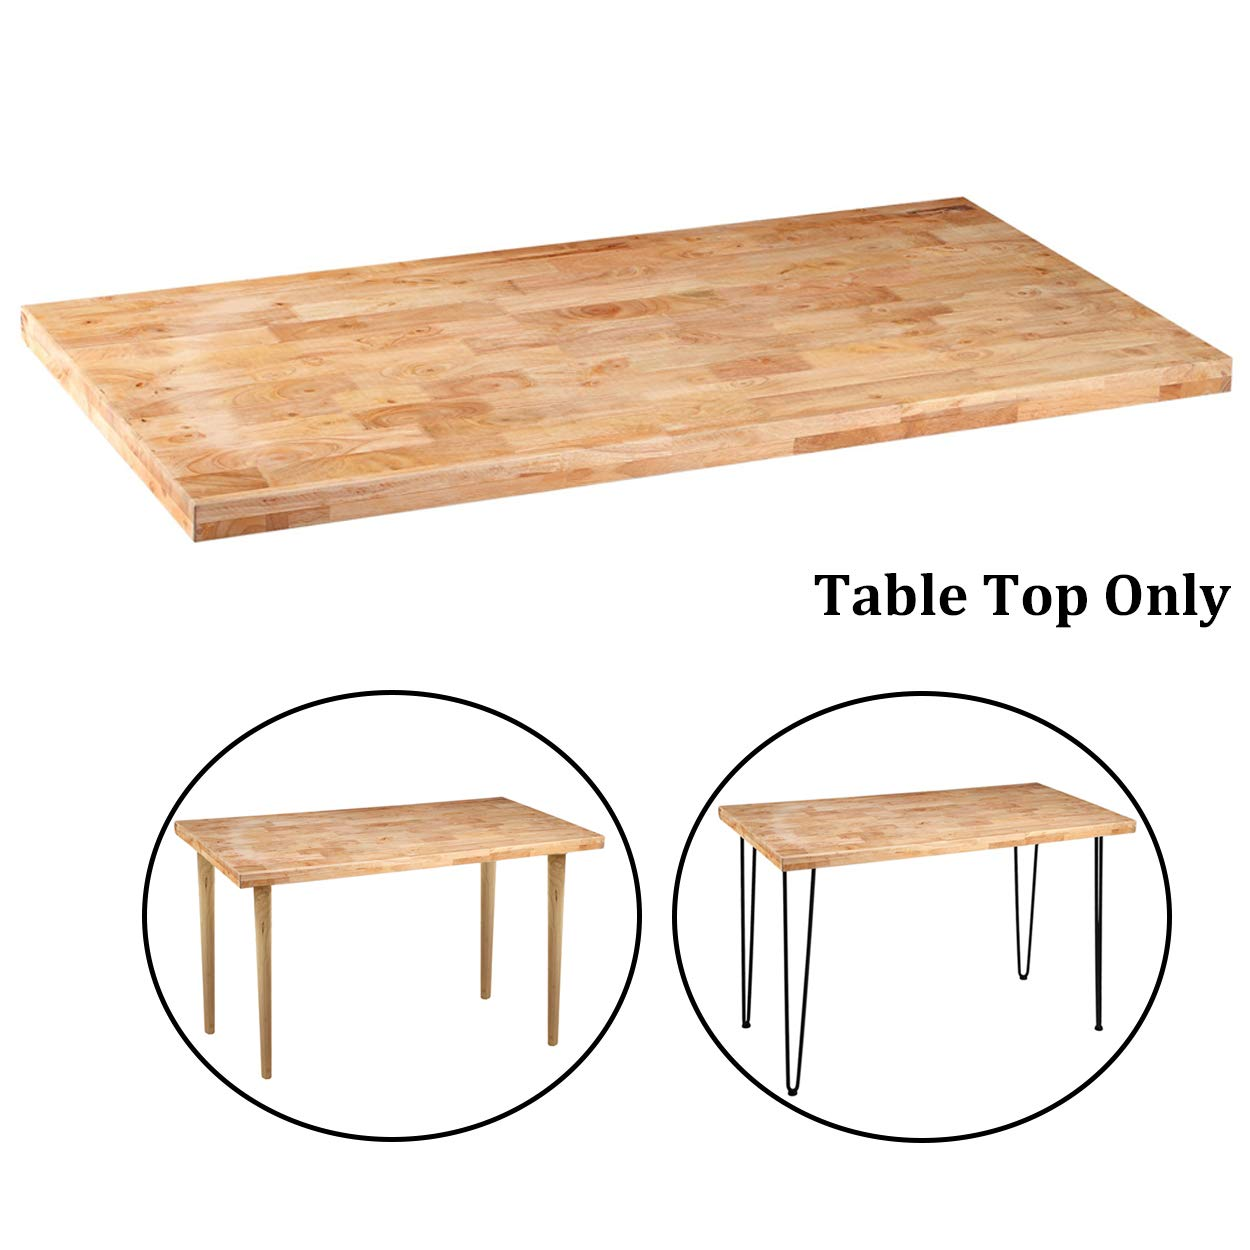 Sumerflos Home Office Desk, Workbench - 47''x 23.5'' Block Solid Pine Wood Table Top - with Pre-drilled Holes & Easy Assembly - Perfect for Computer Desk/Writing Desk/Dining Table (Table Top Only) by SUMERFLOS